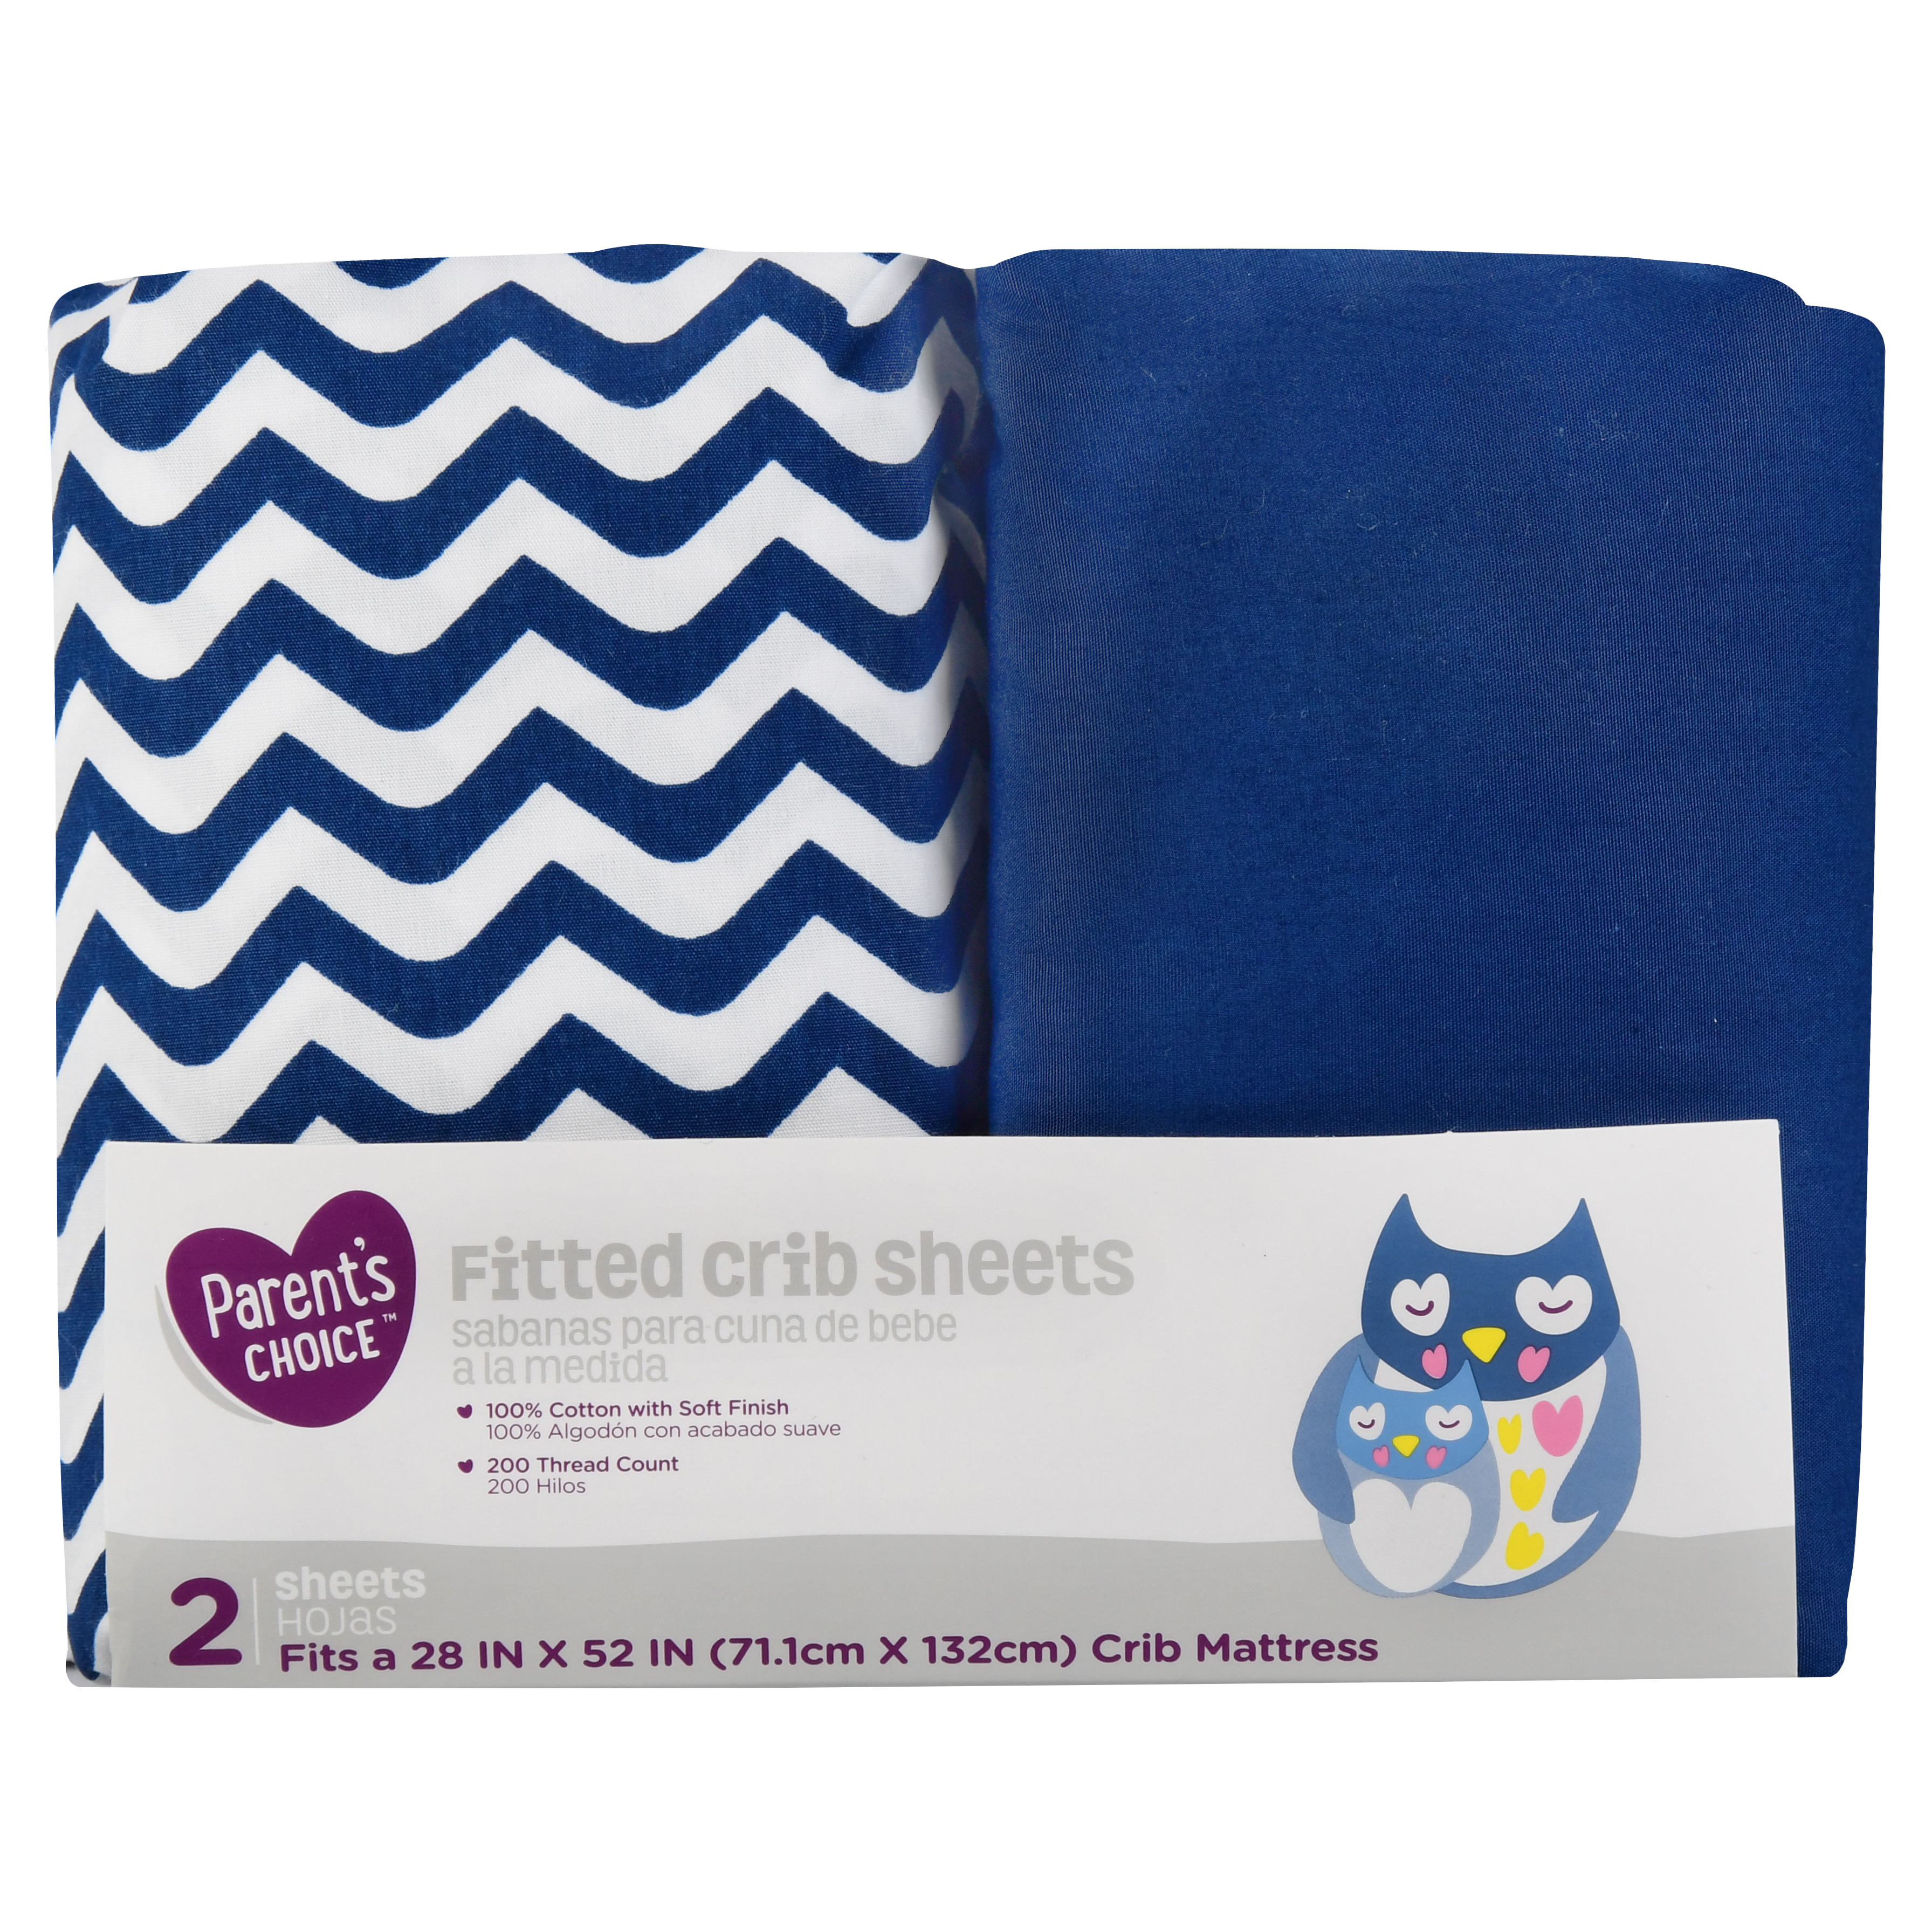 Parent's Choice Fitted Crib Sheets, Navy Print, 2 Pack